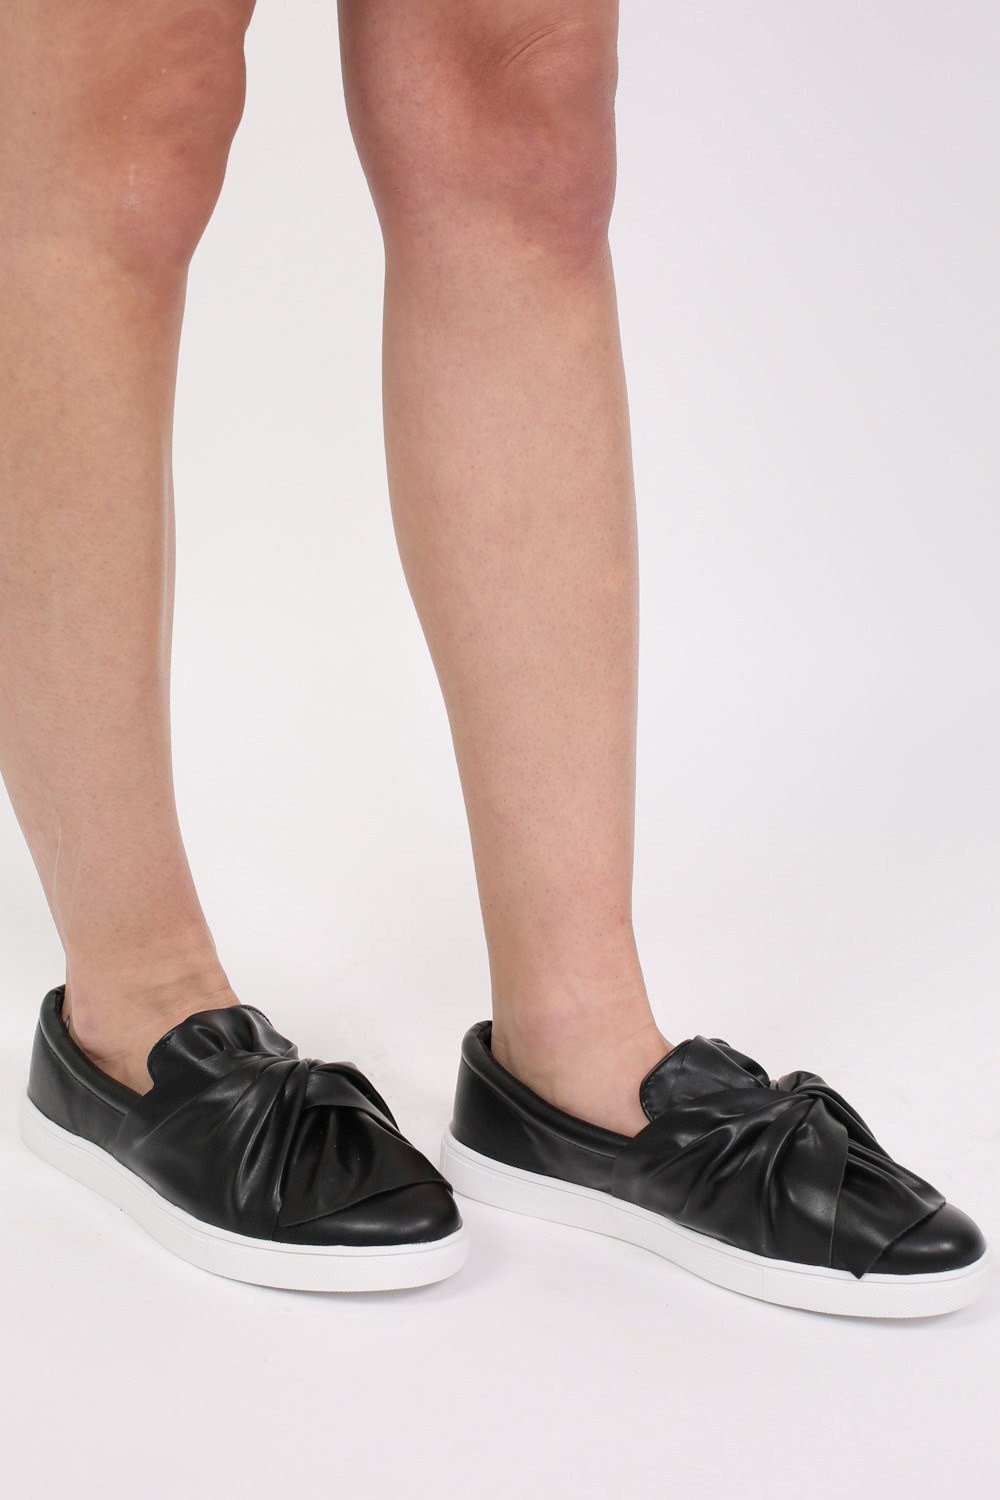 Knot Bow Front Slip On Skater Pumps in Black 0